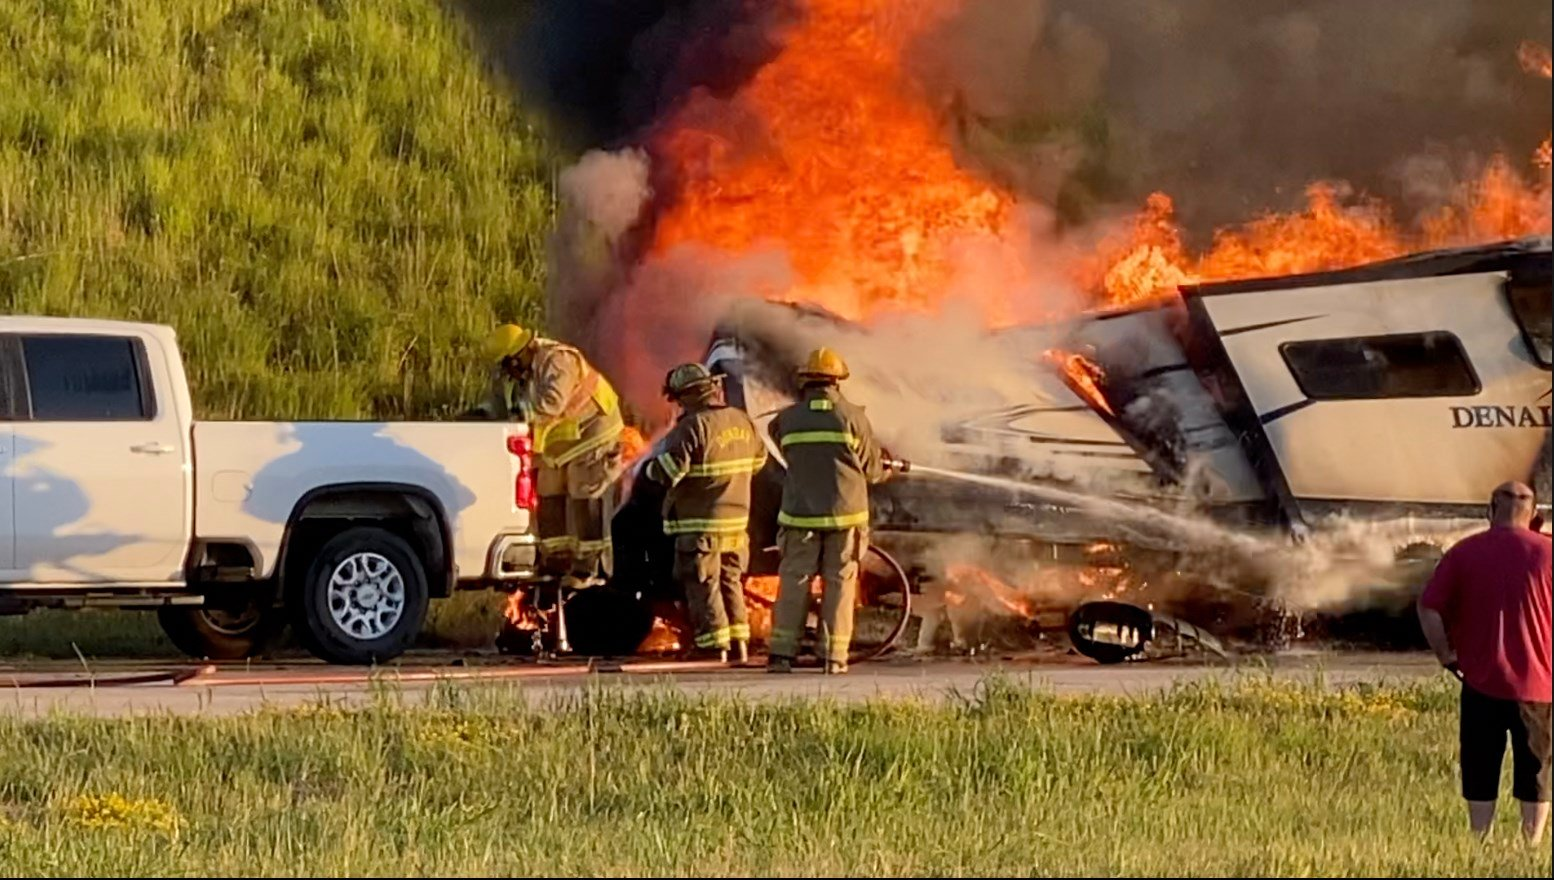 Dunbar firefighters improvise to save truck from burning camper